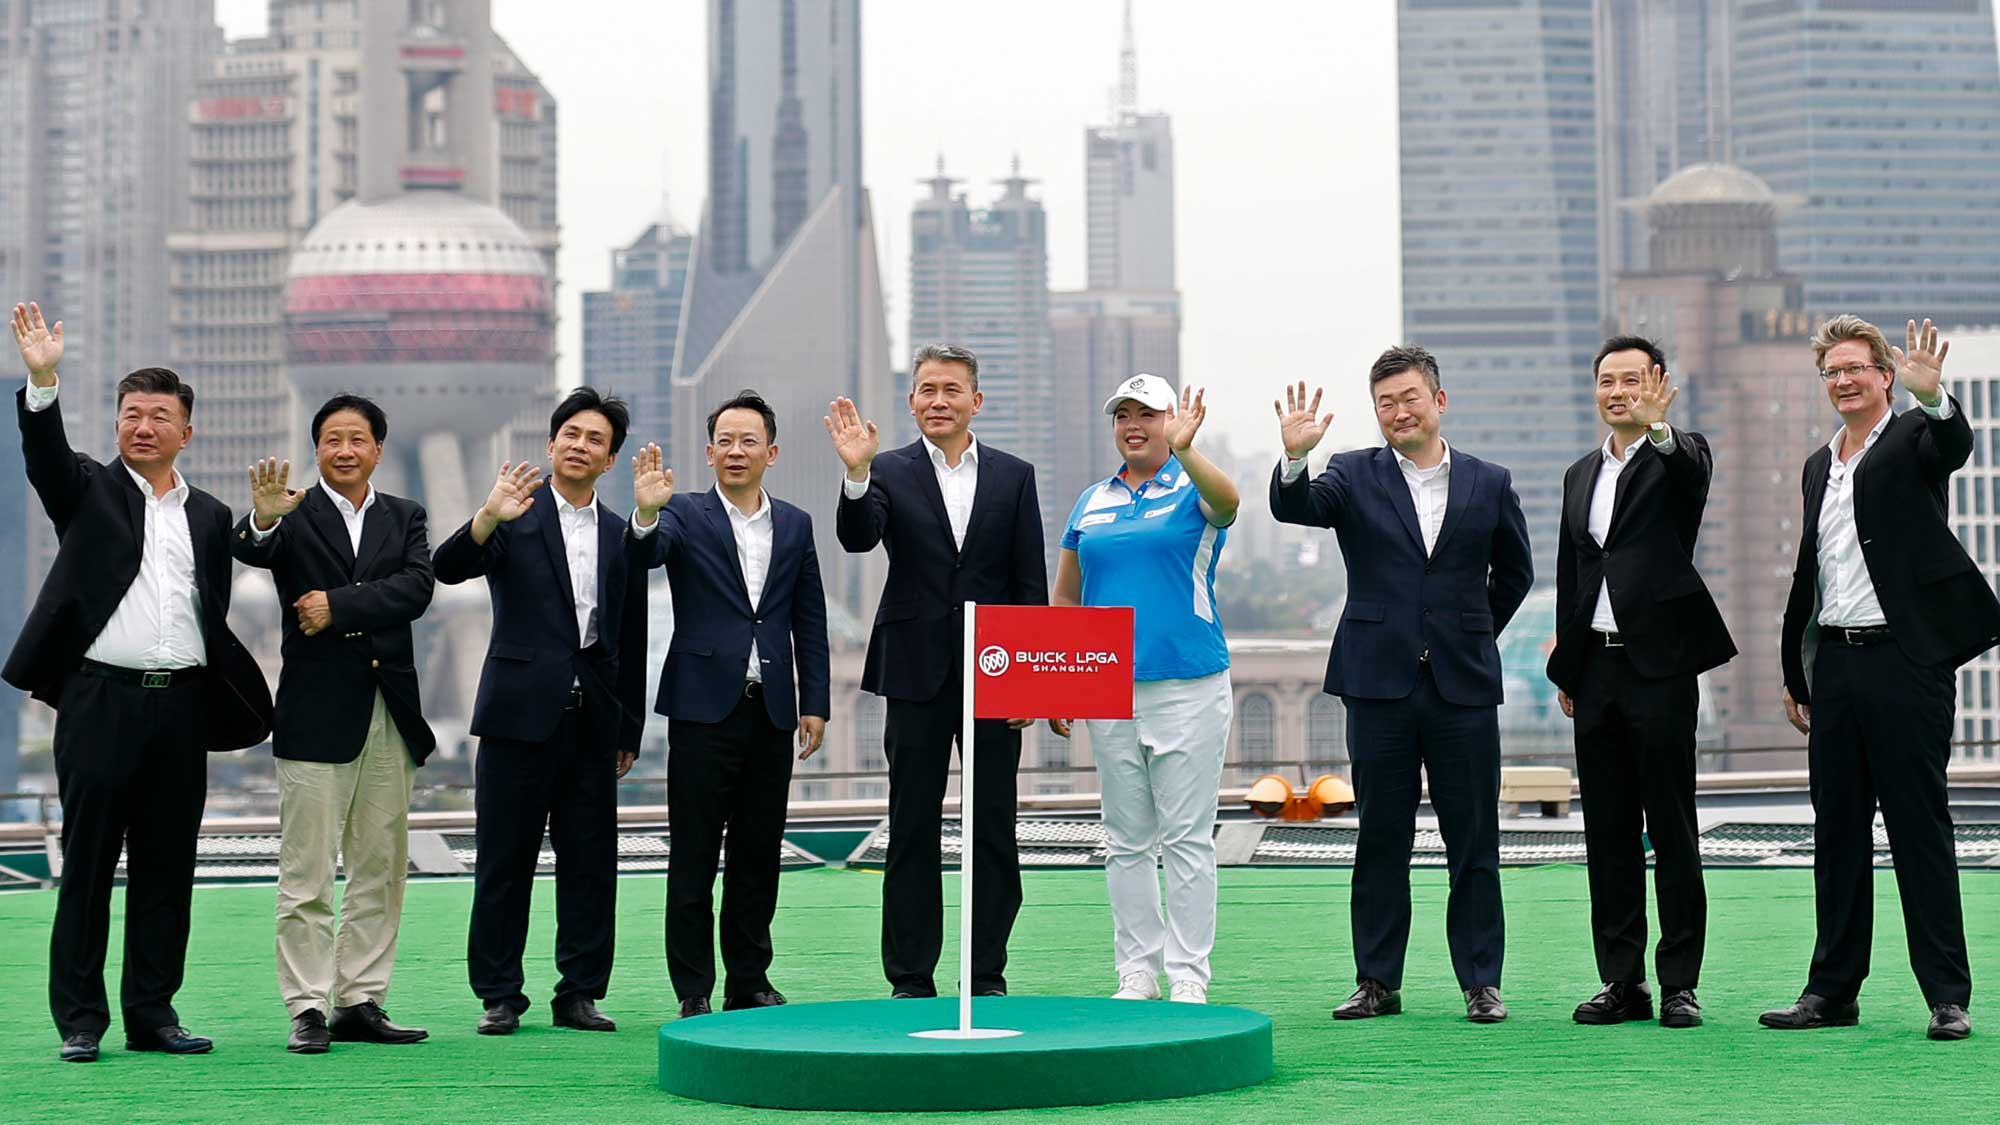 Shanshan Feng, the first Chinese player, male or female, to win a Major and be ranked No.1 in the world, attended the announcement today alongside the VIP attendees.